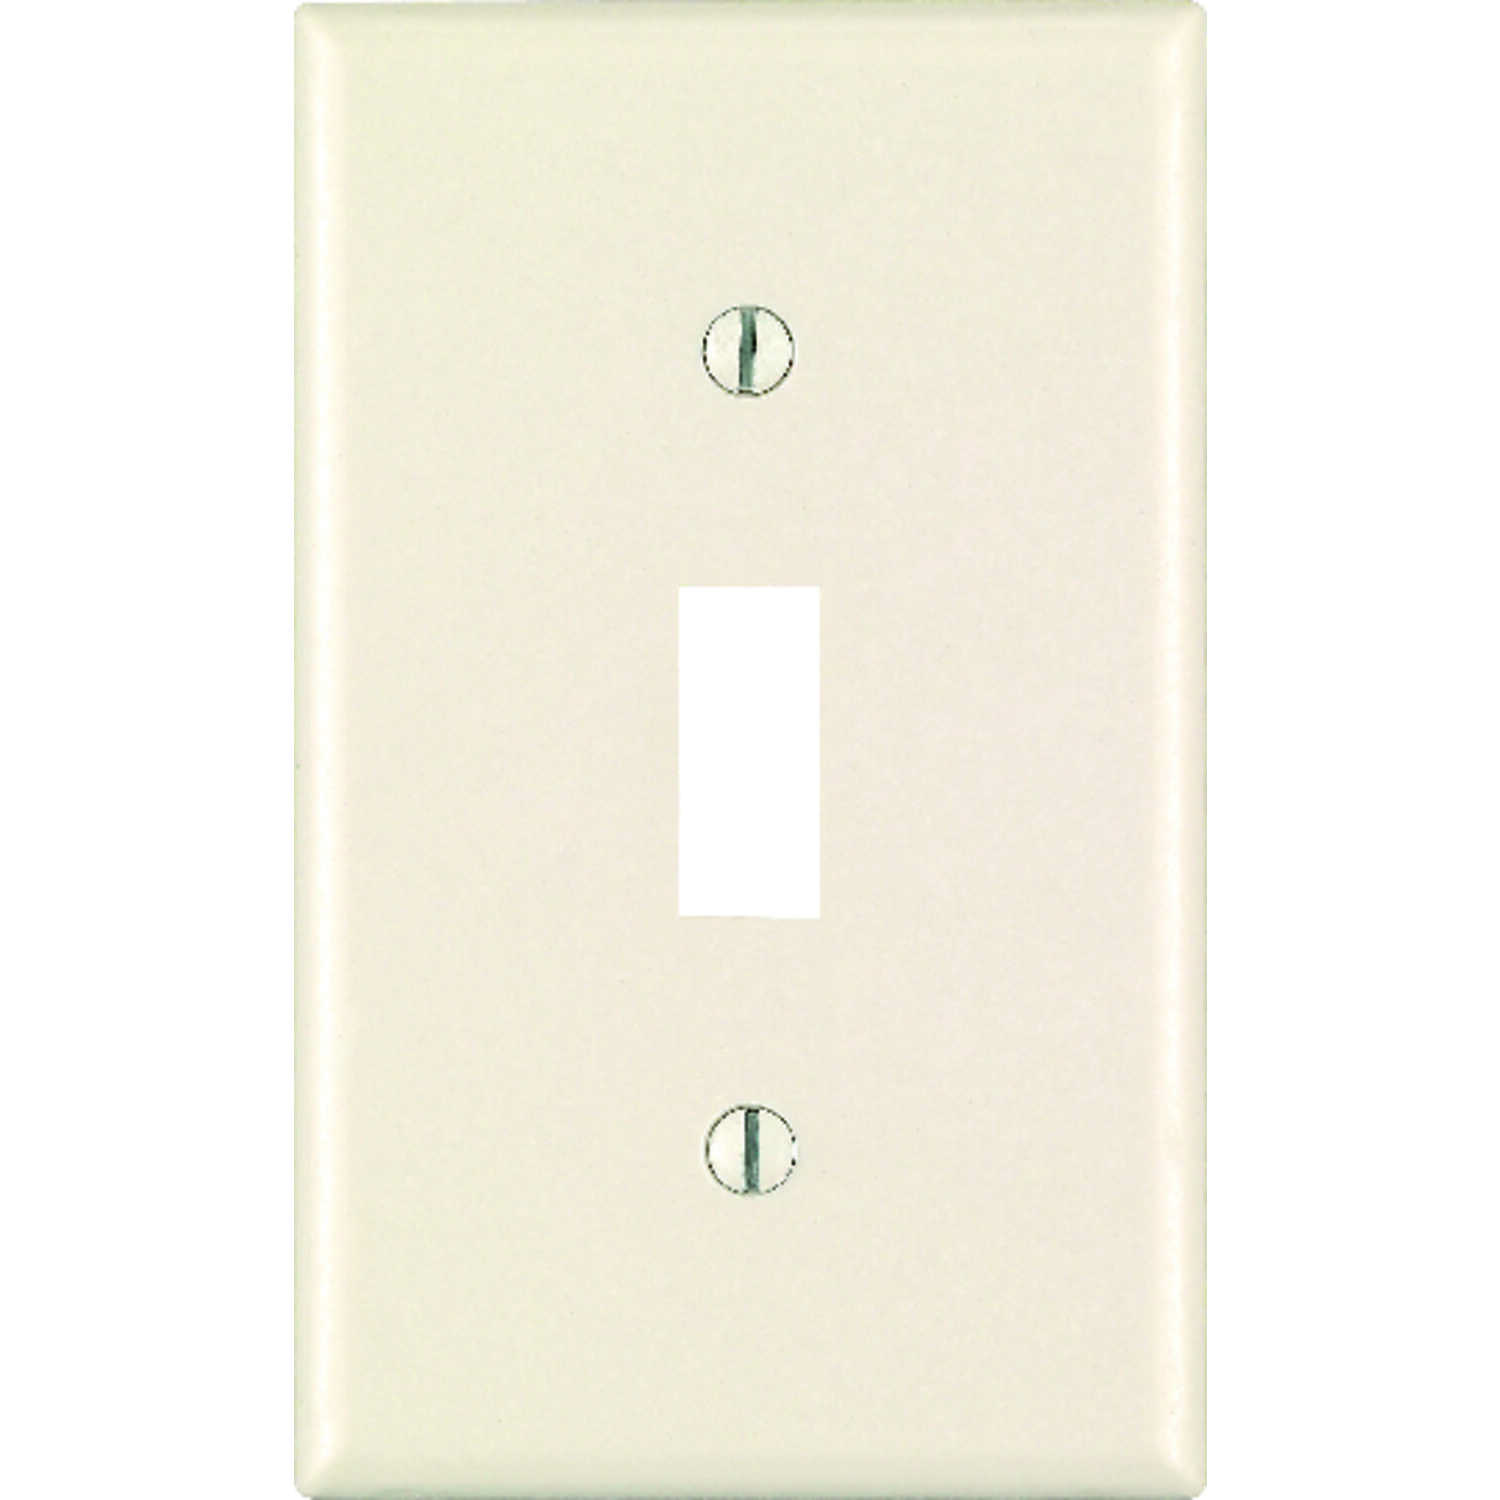 Leviton  Almond  1 gang Toggle  Plastic  1 pk Wall Plate